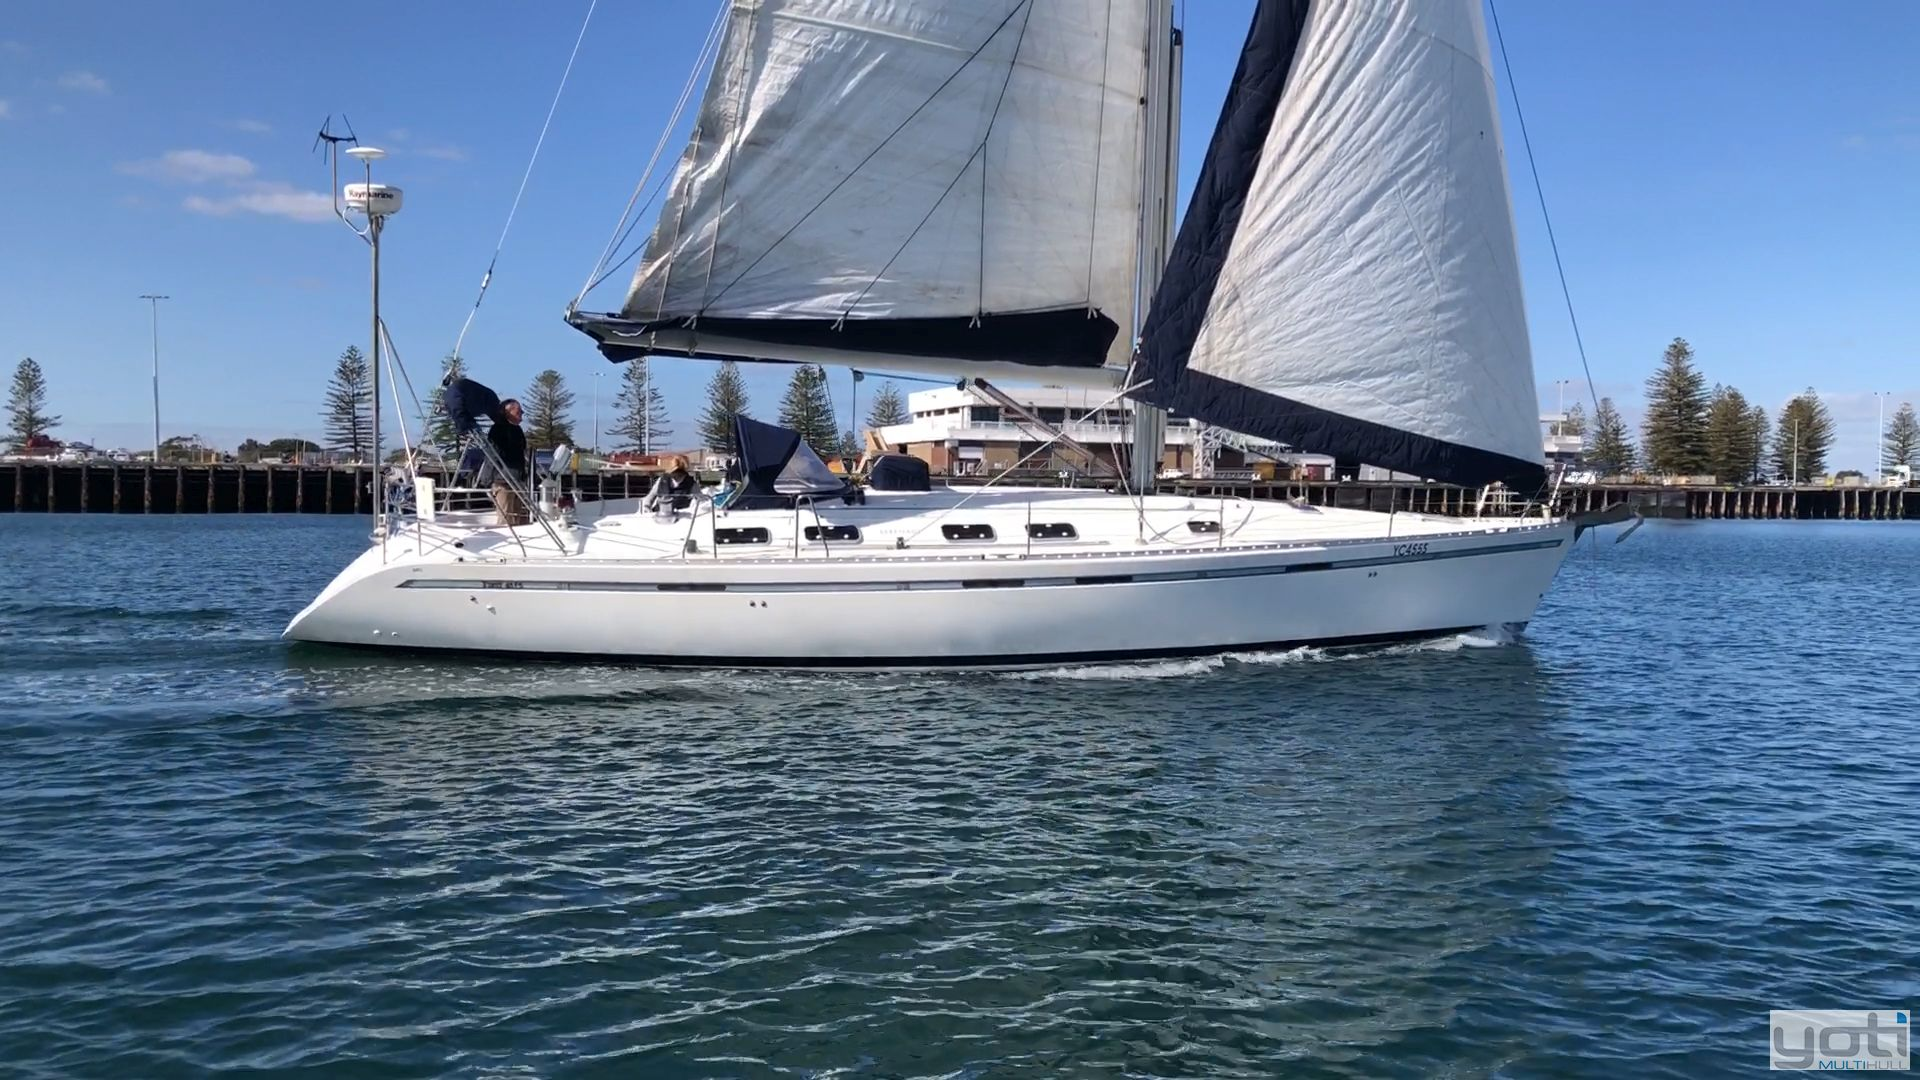 Beneteau First 45f5 - Serenade - $158,000